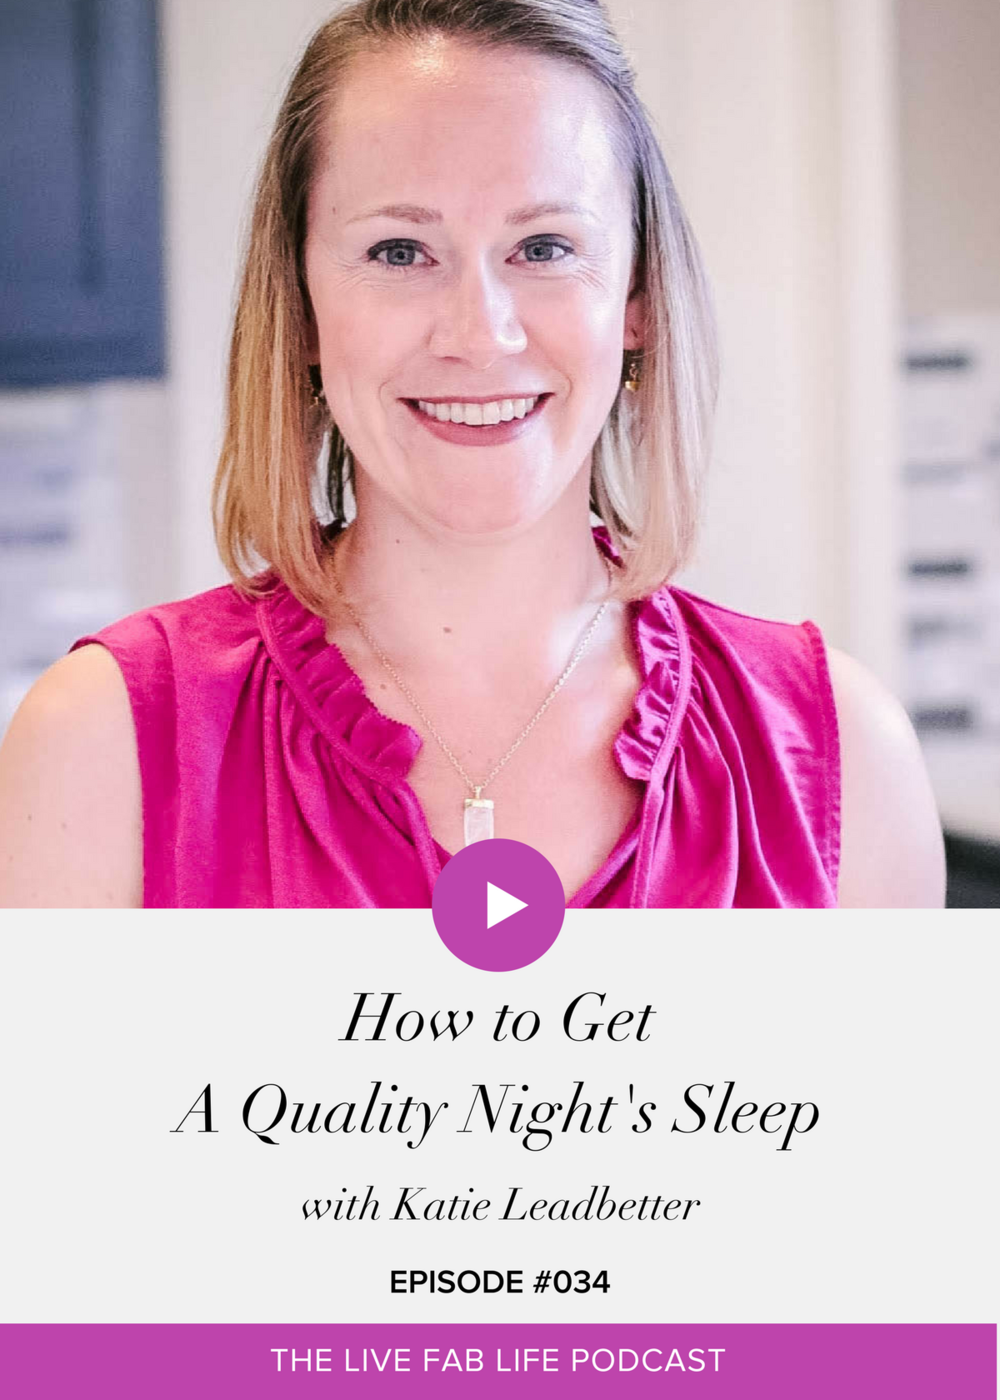 Episode 034: How to Get A Quality Night's Sleep